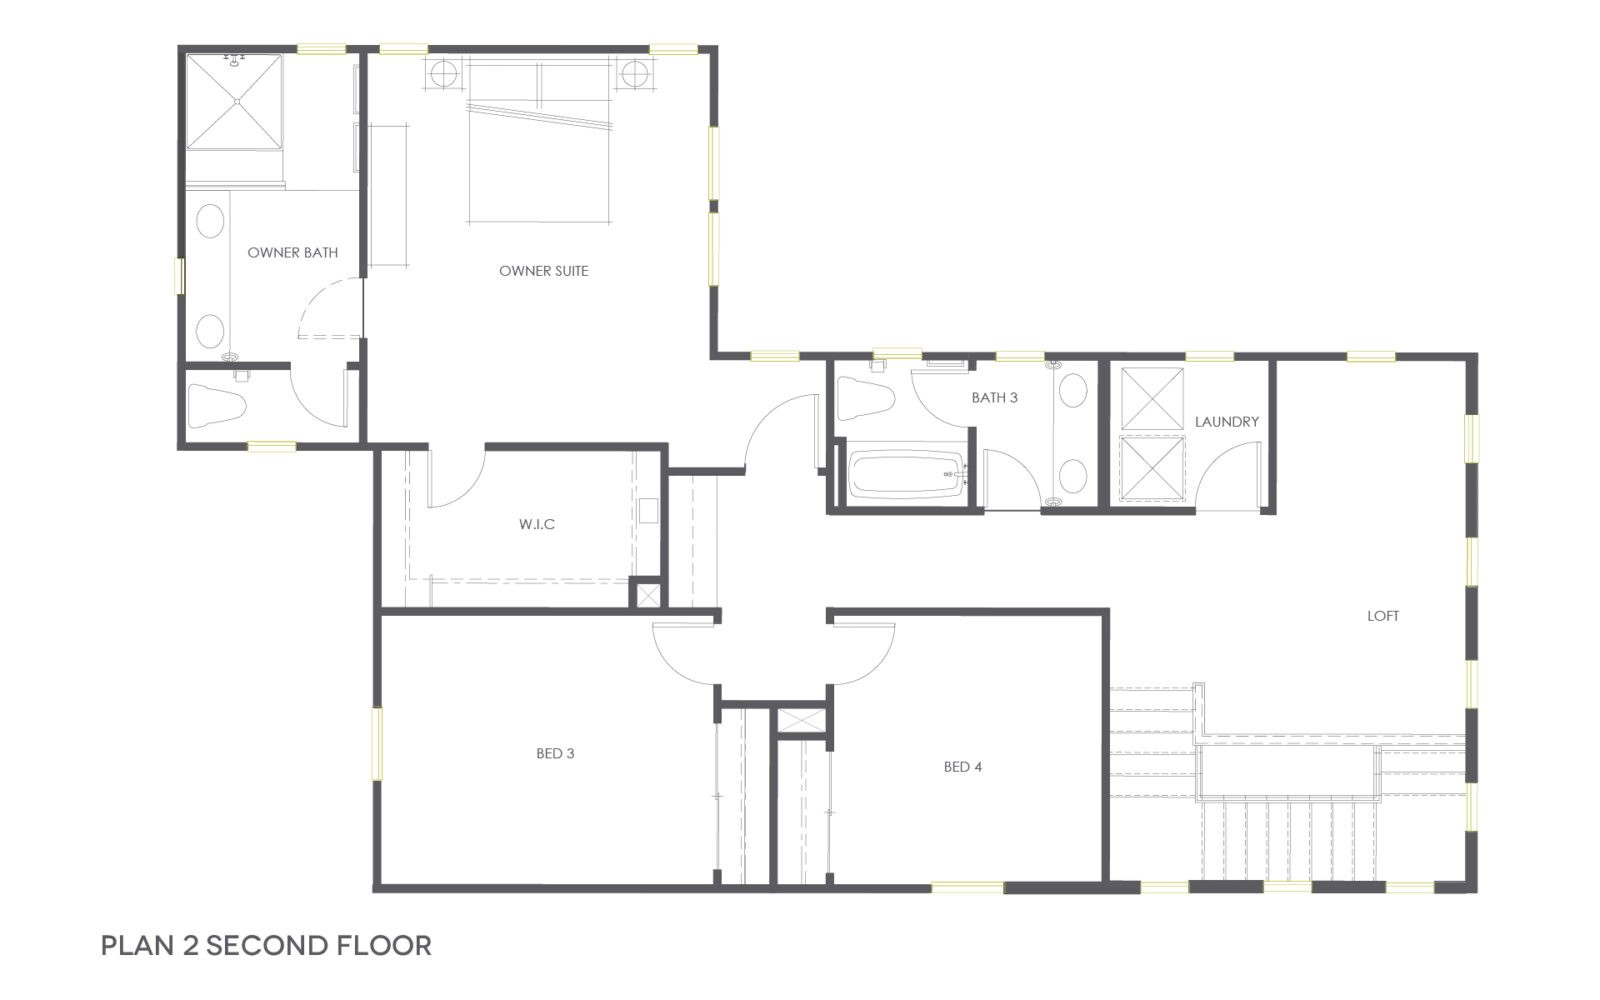 Plan 2 Second Floor